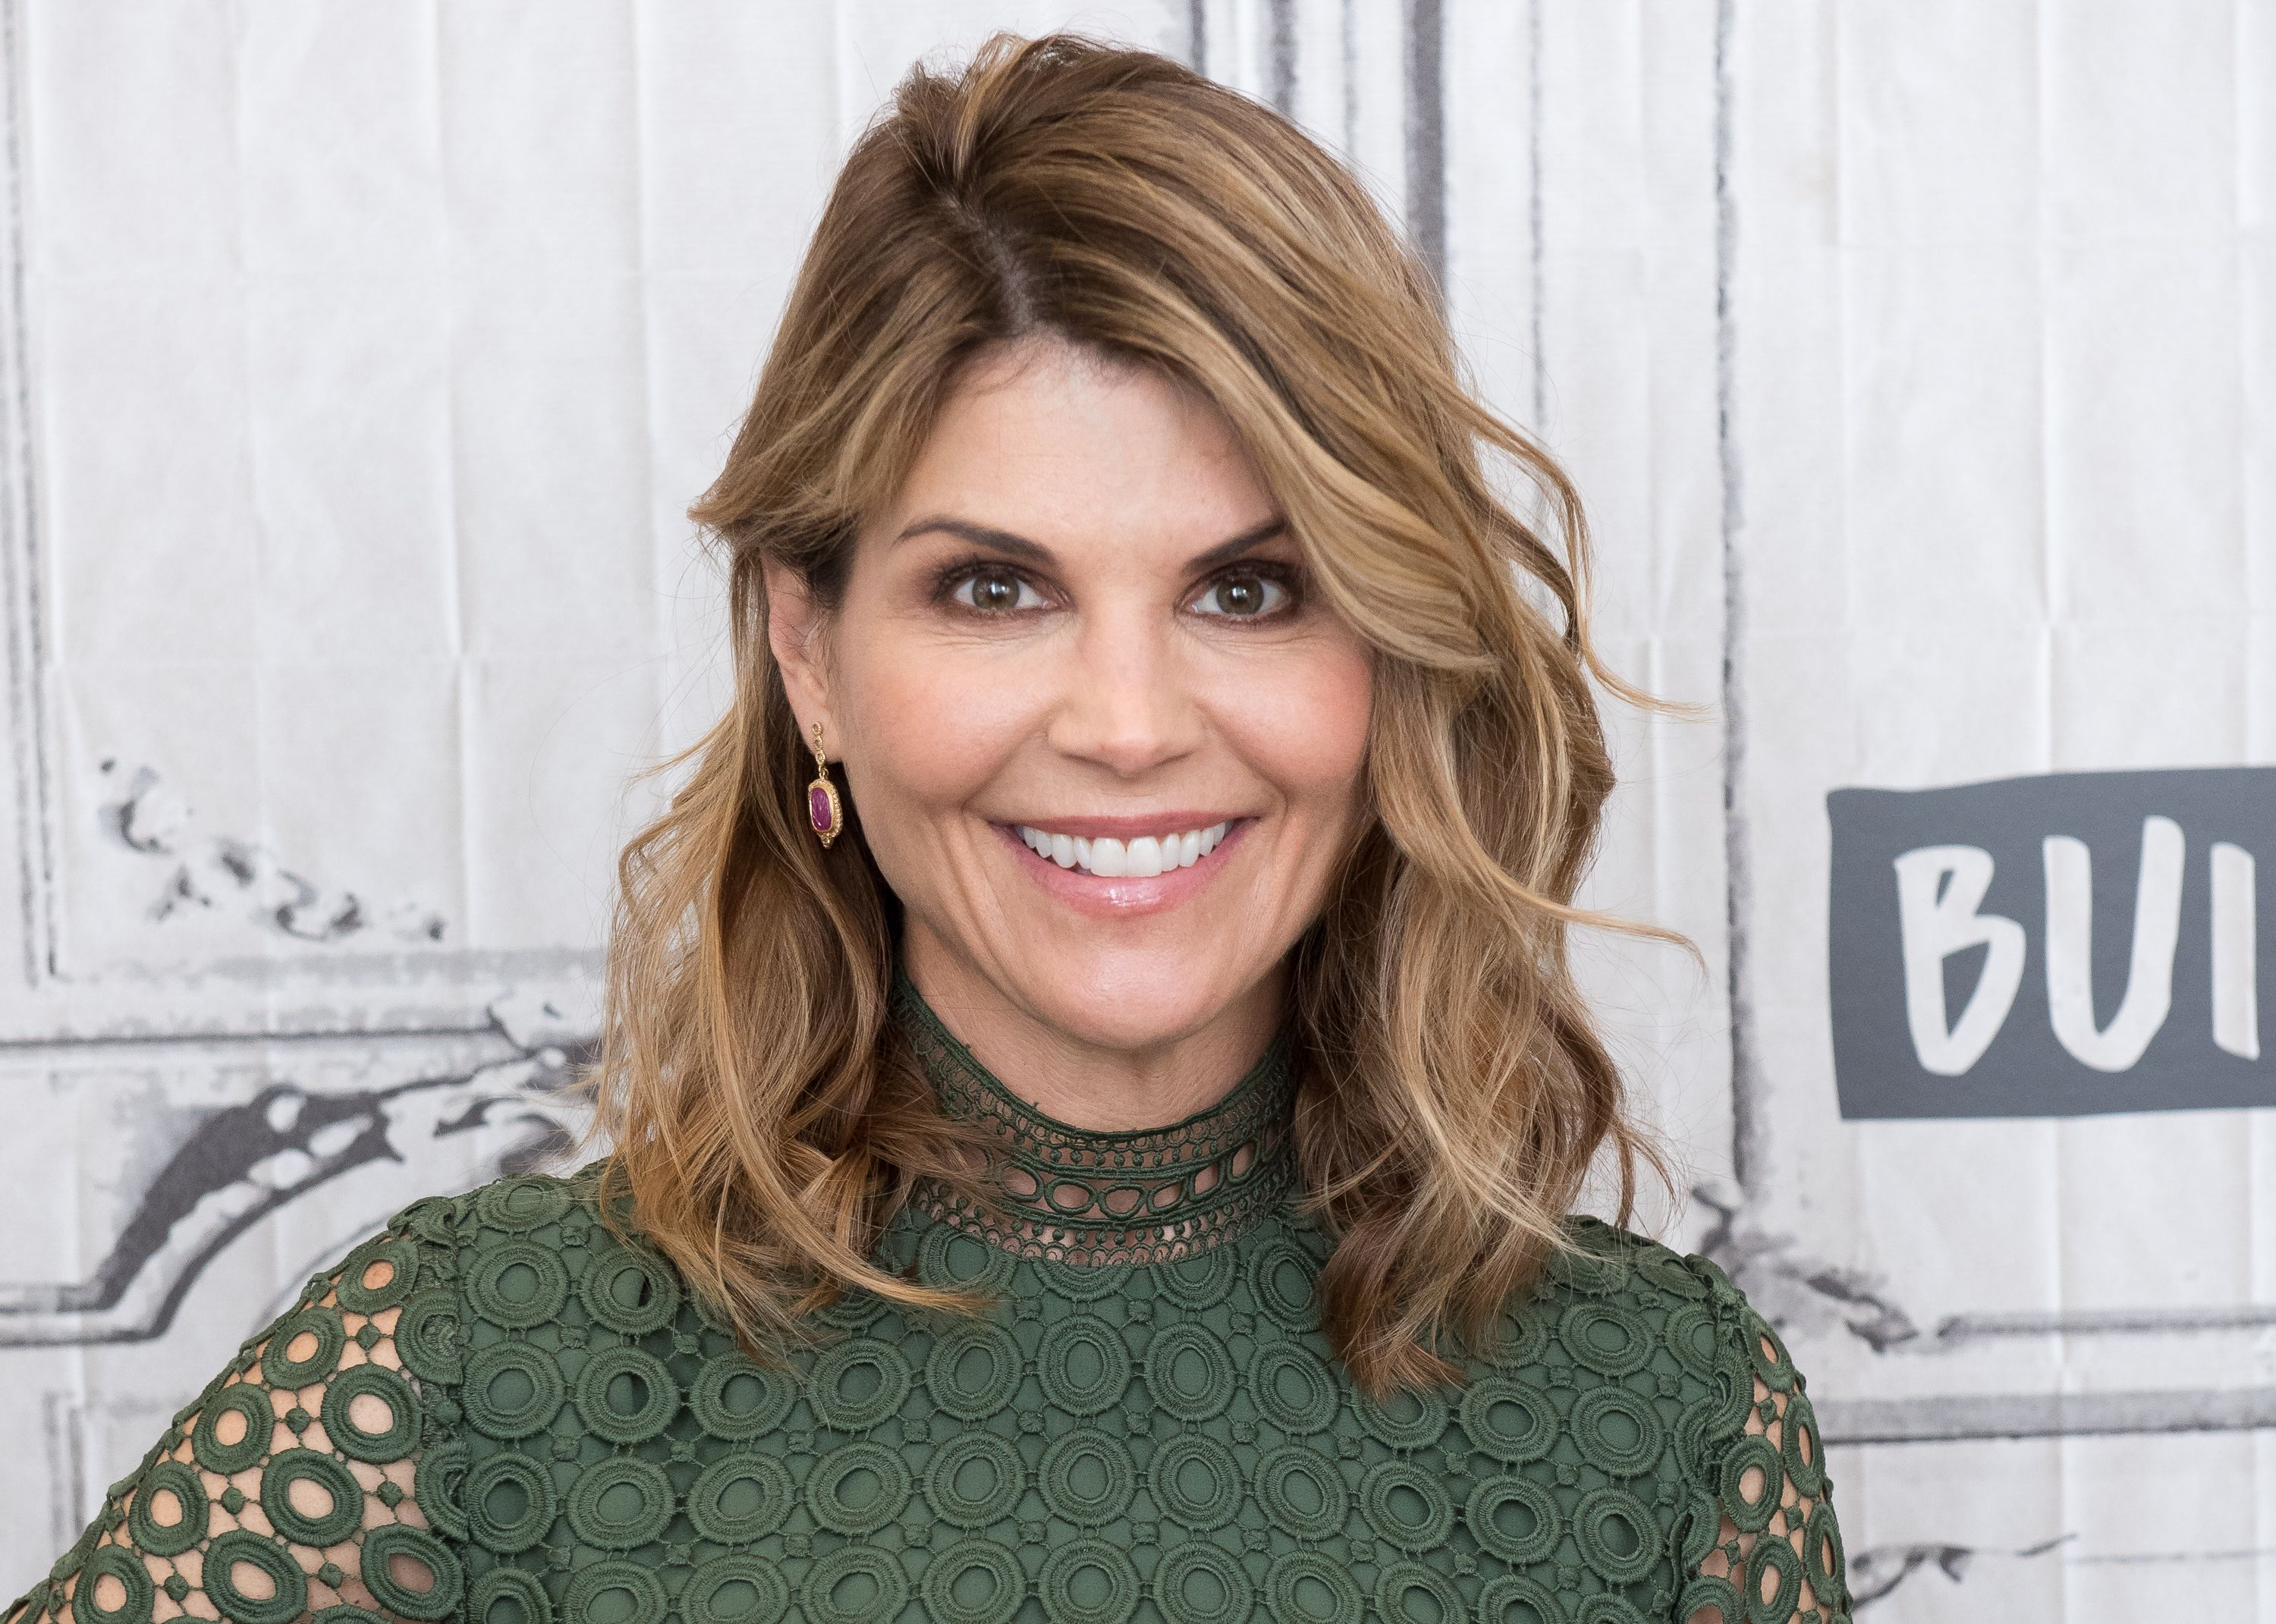 Lori Loughlin Deletes Her Instagram Amid College Admissions Cheating Scandal